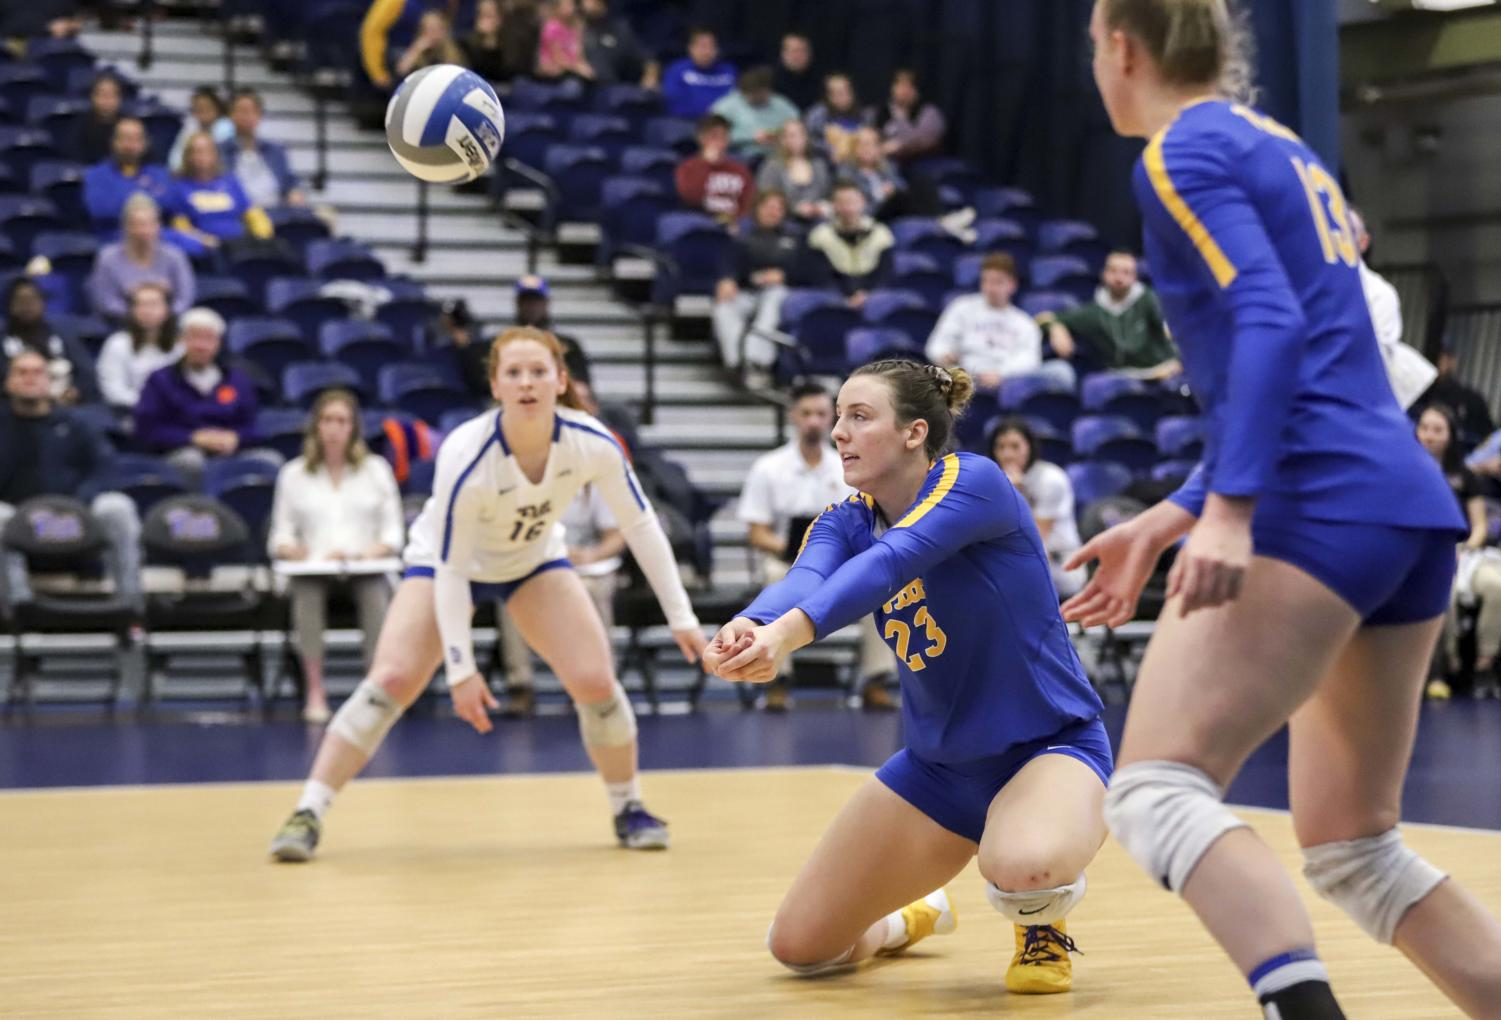 Pitt hasn't won a national championship in any sport since 1976, but Pitt volleyball will make an attempt in the NCAA Tournament starting Friday.